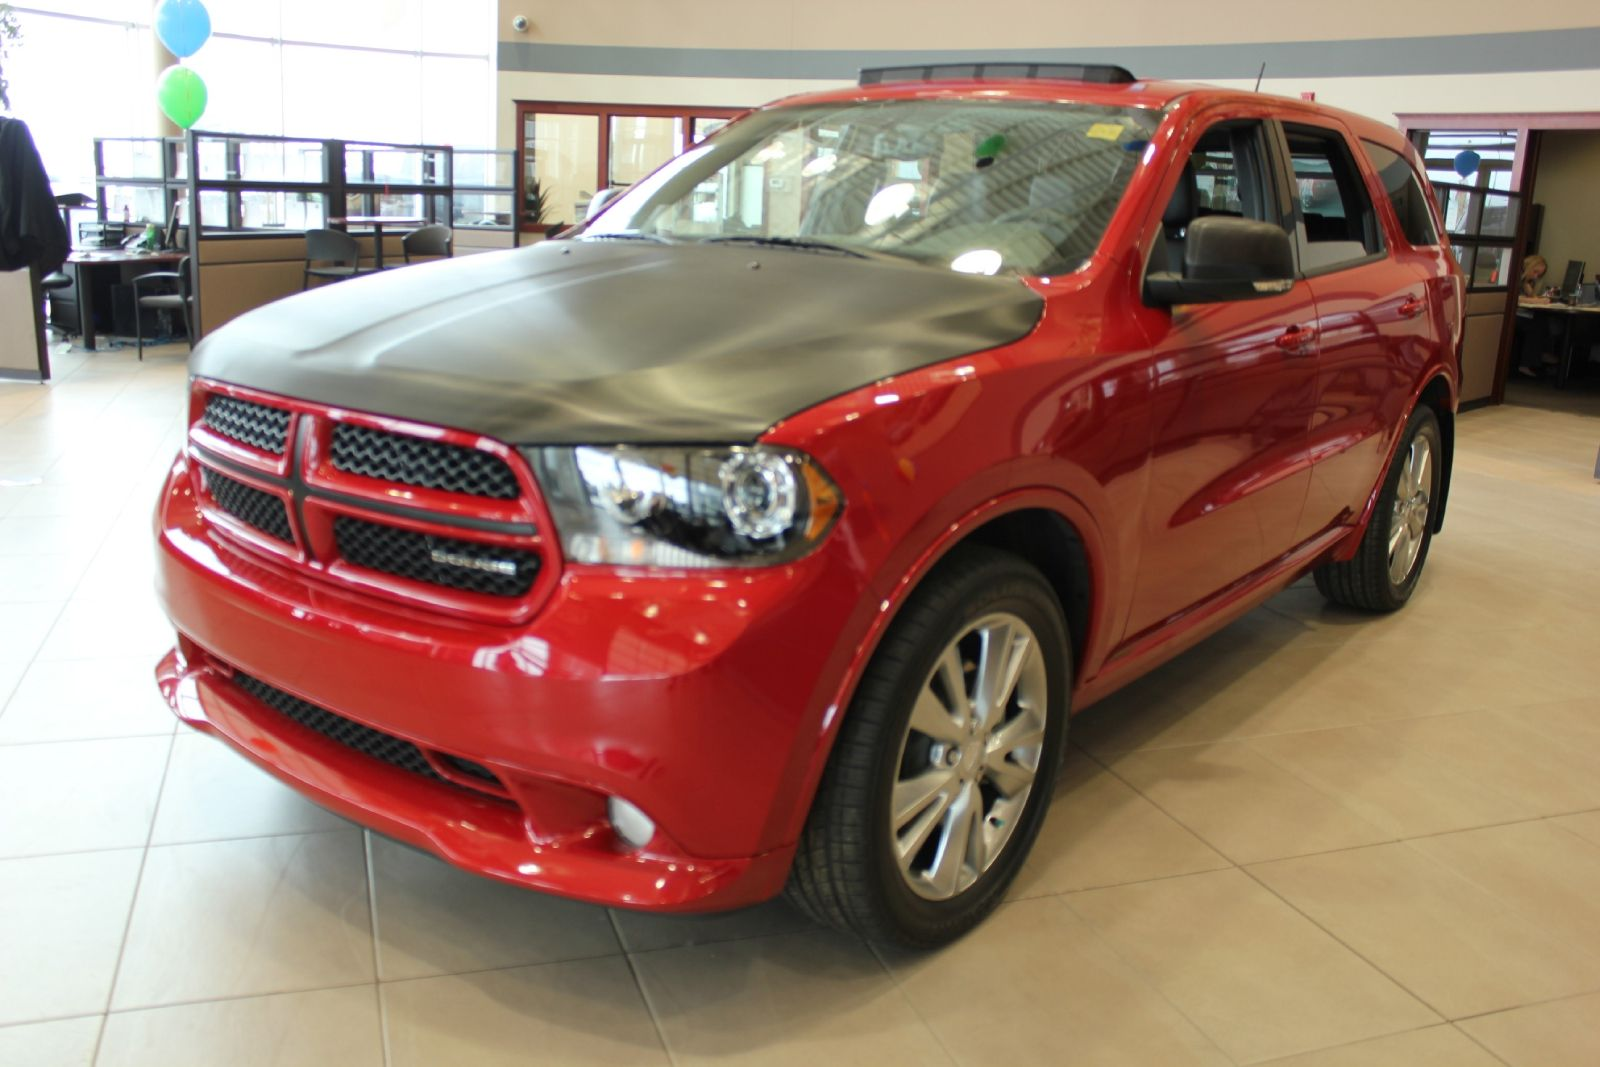 Check out this Durango R/T with custom decals which we are fondly ...